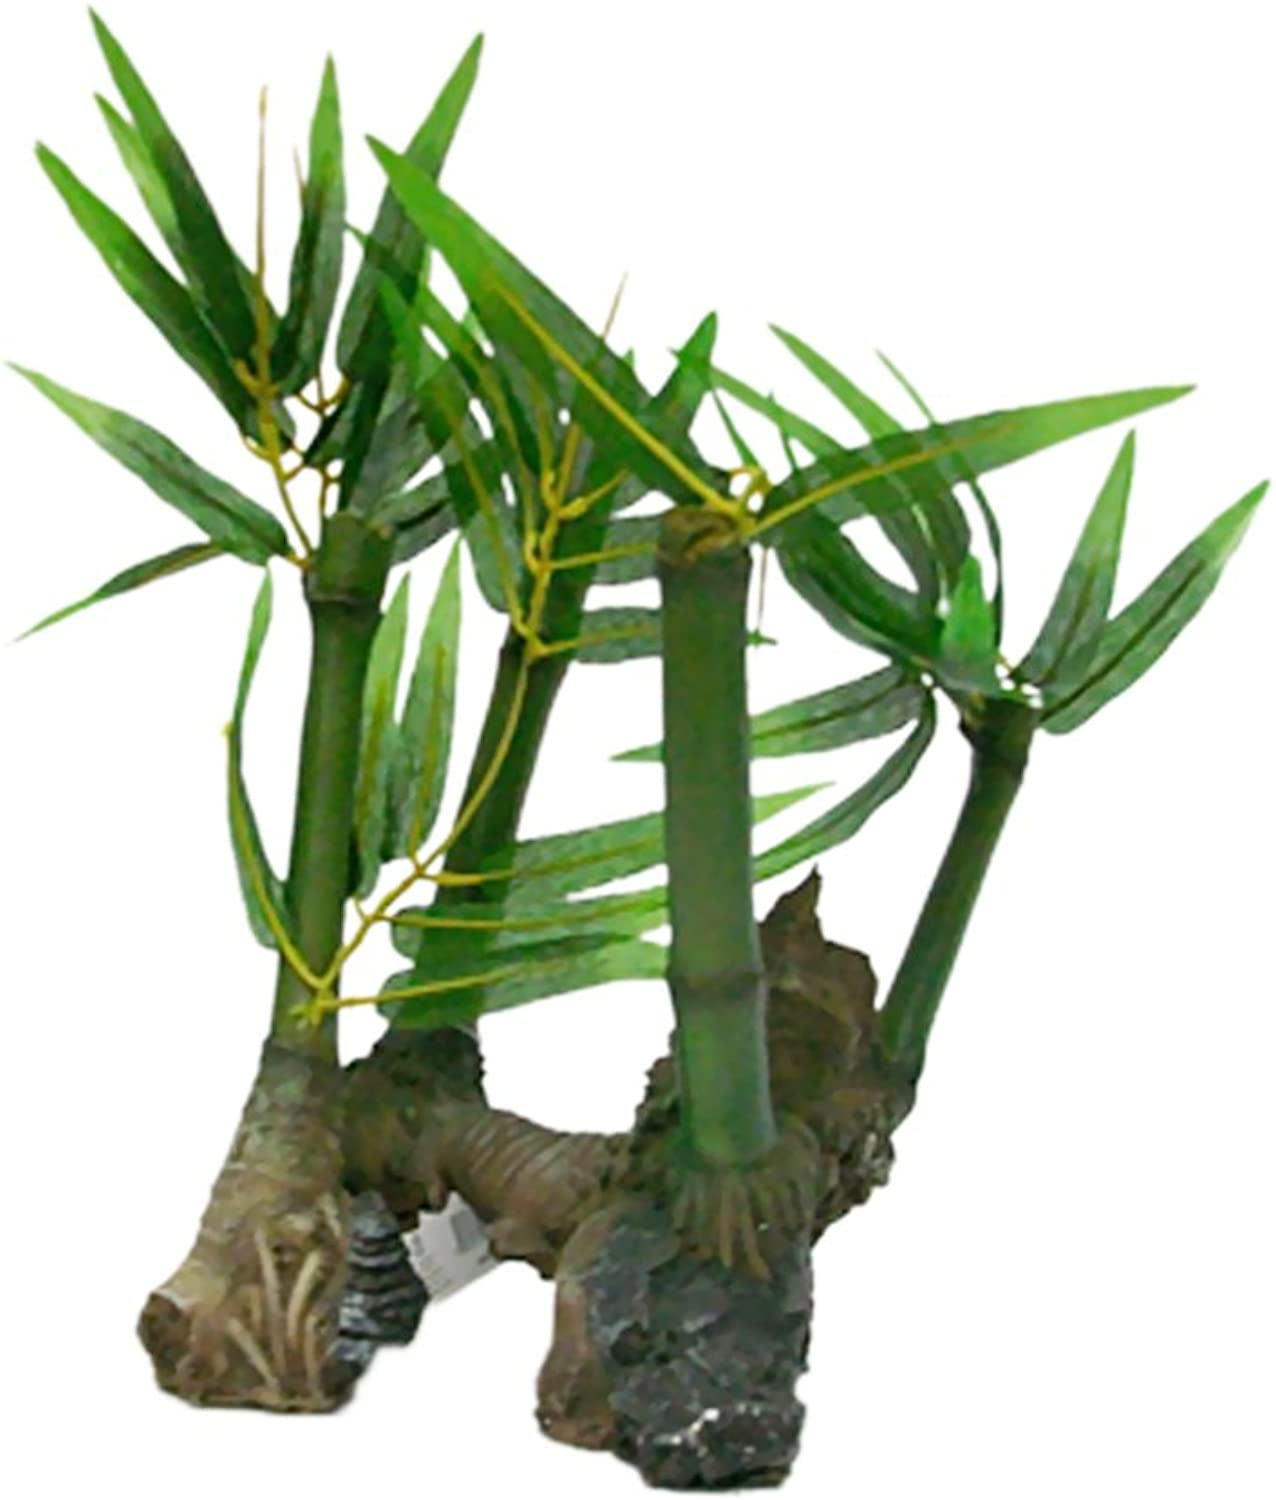 PenPlax REPB1 Bamboo Roots with Silk Plants